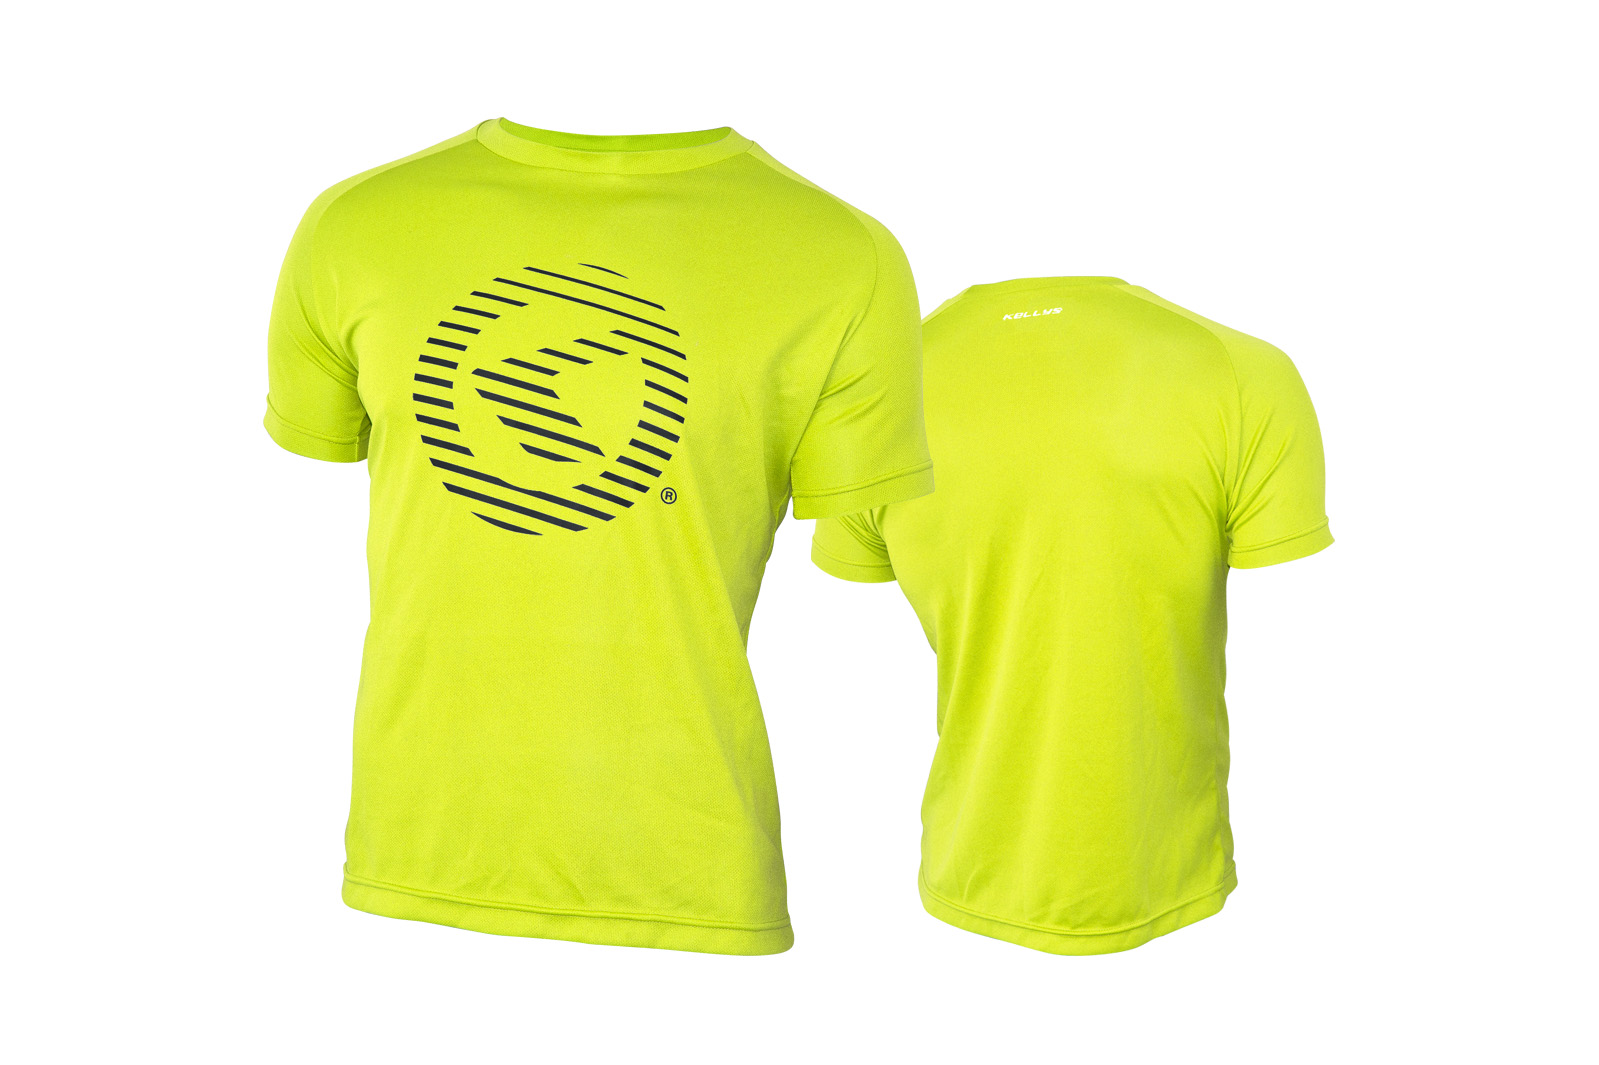 T-Shirt KELLYS ACTIVE  lime - S - T-Shirt KELLYS ACTIVE  lime - S